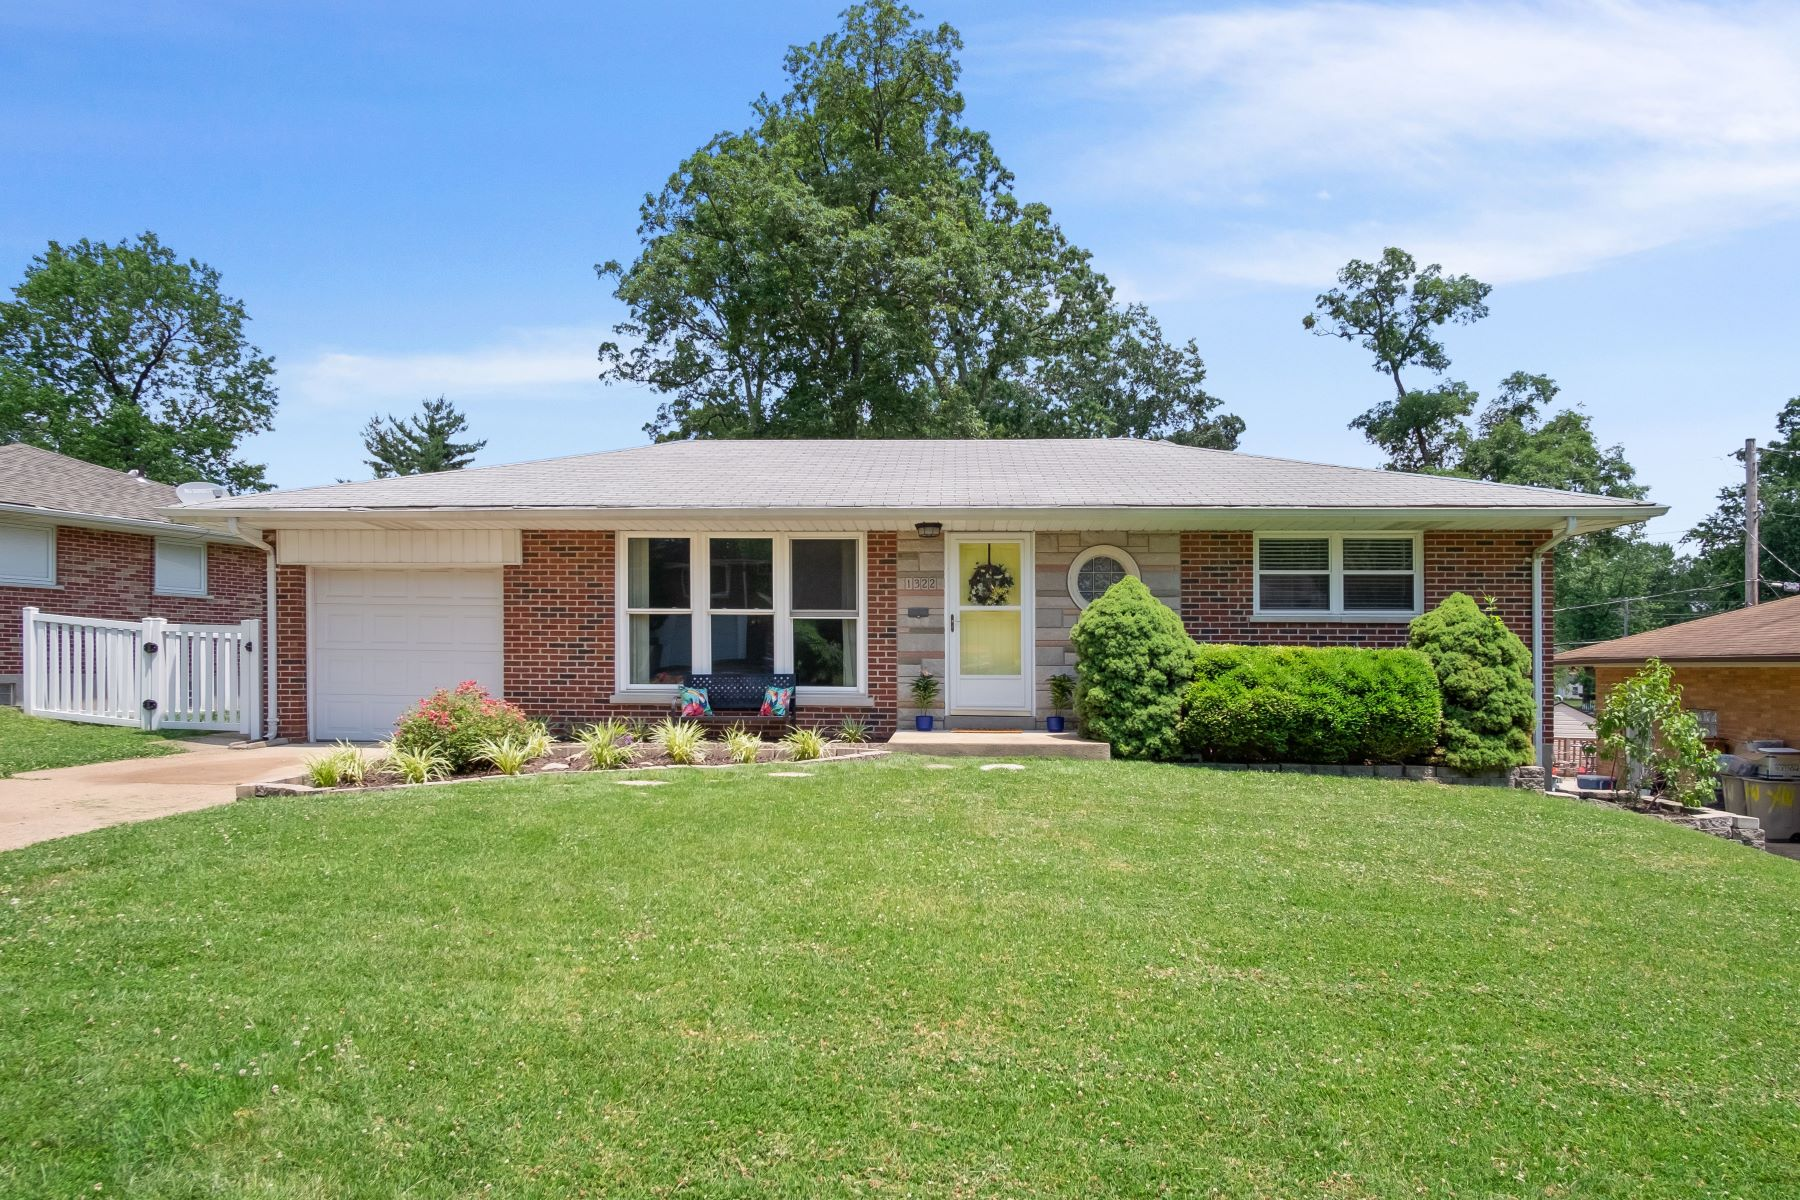 Single Family Homes for Sale at Charming Crestwood Ranch with Updates 1322 Dallwood Drive Crestwood, Missouri 63126 United States